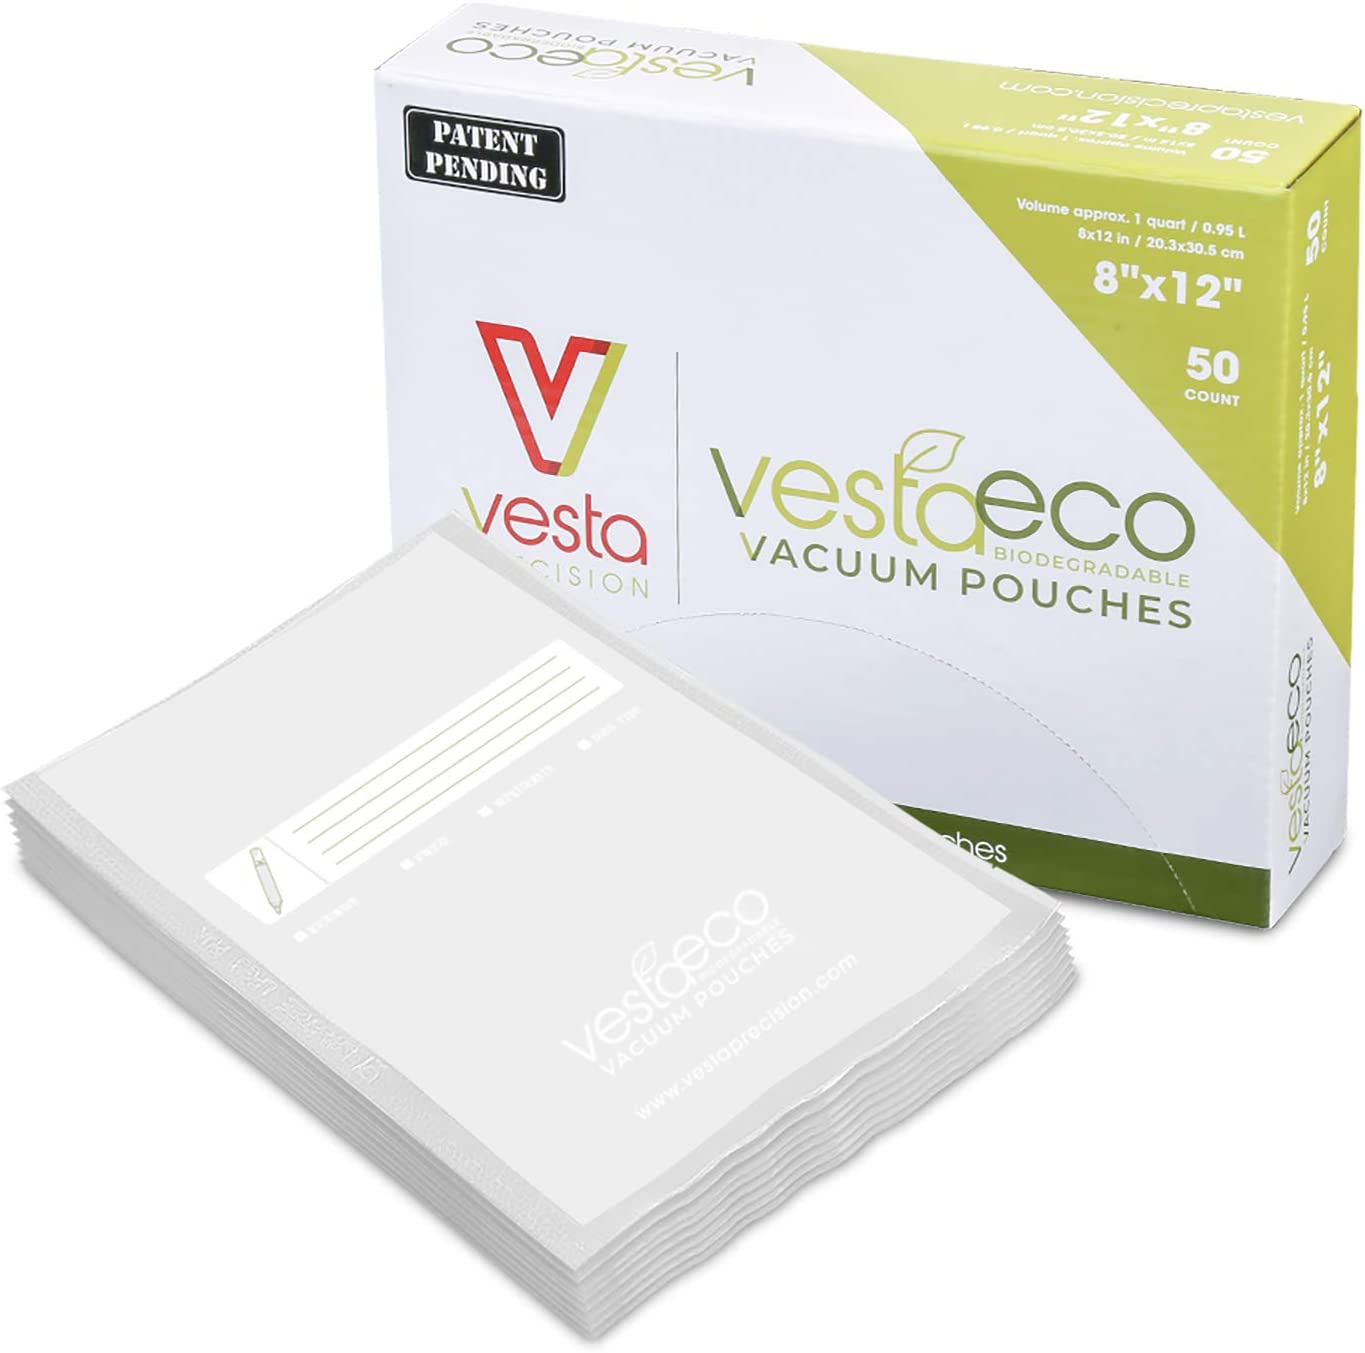 VestaEco Biodegradable Chamber Machine Vacuum Pouches | 50 count | OK Compost | Certificates acquired | Patent Pending | Great for food vac storage or sous vide | sustainable environment saver | (8x12)